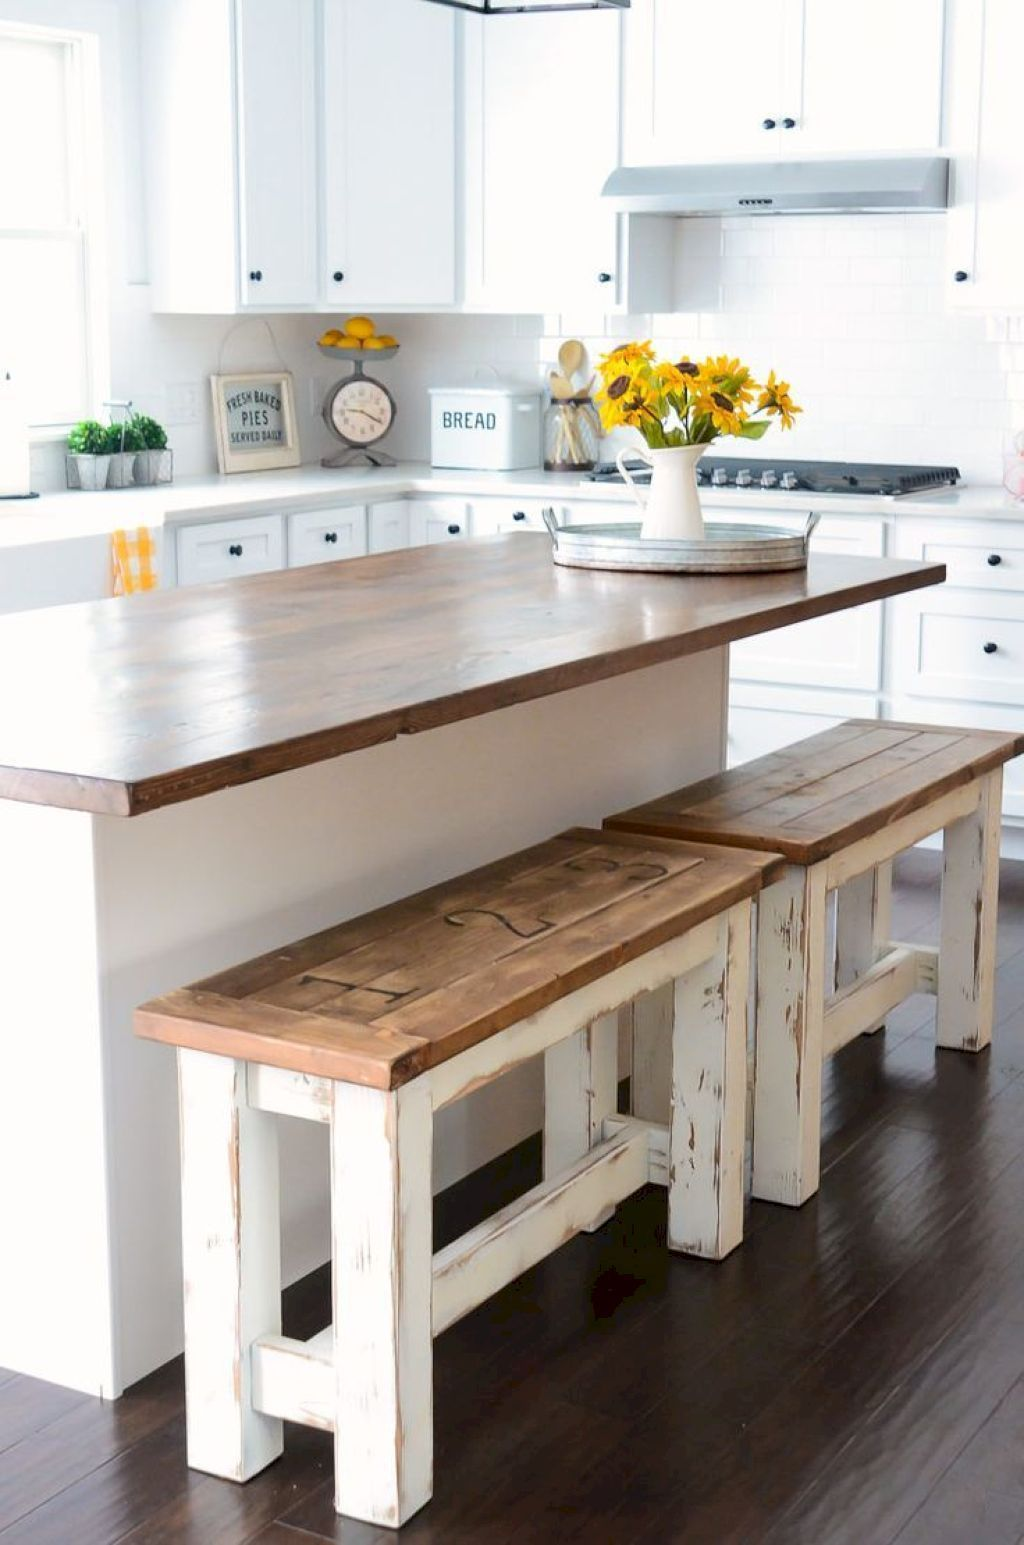 farmhouse kitchen decor ideas that would make joanna gaines proud